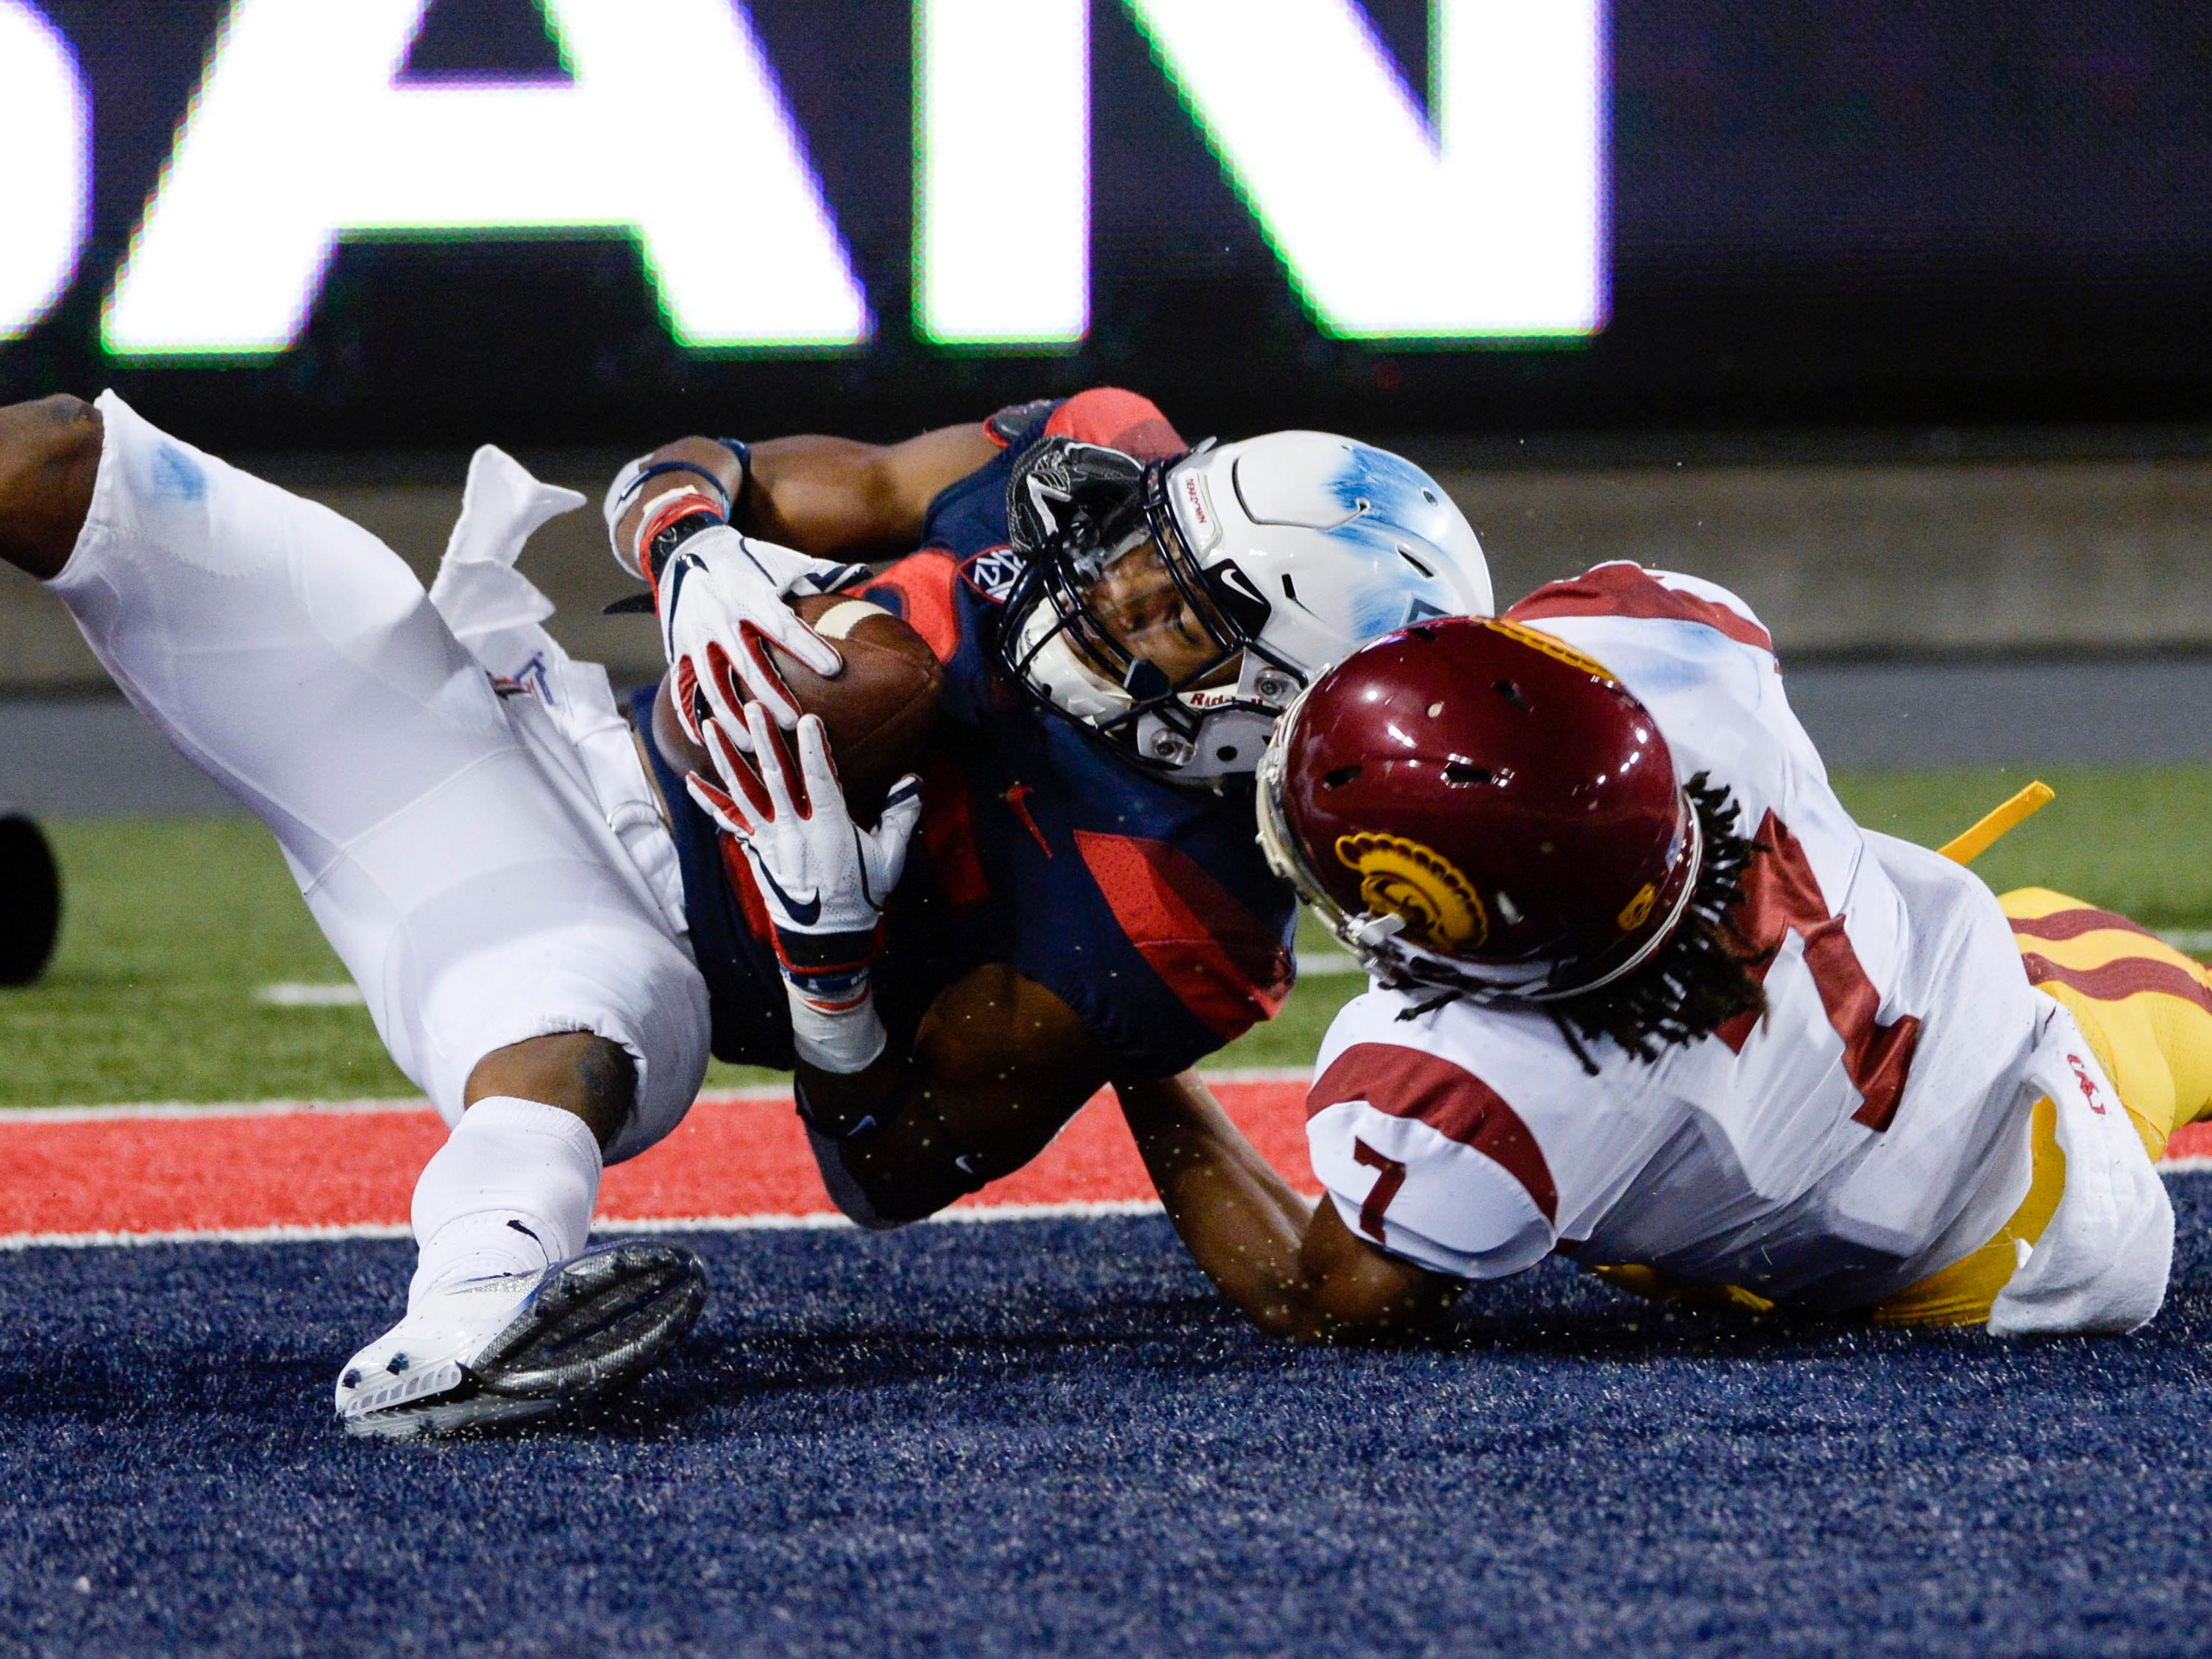 Sep 29, 2018; Tucson, AZ, USA; Arizona Wildcats wide receiver Stanley Berryhill III (86) scores a touchdown as Southern California Trojans safety Marvell Tell III (7) defends during the second half at Arizona Stadium. Mandatory Credit: Casey Sapio-USA TODAY Sports